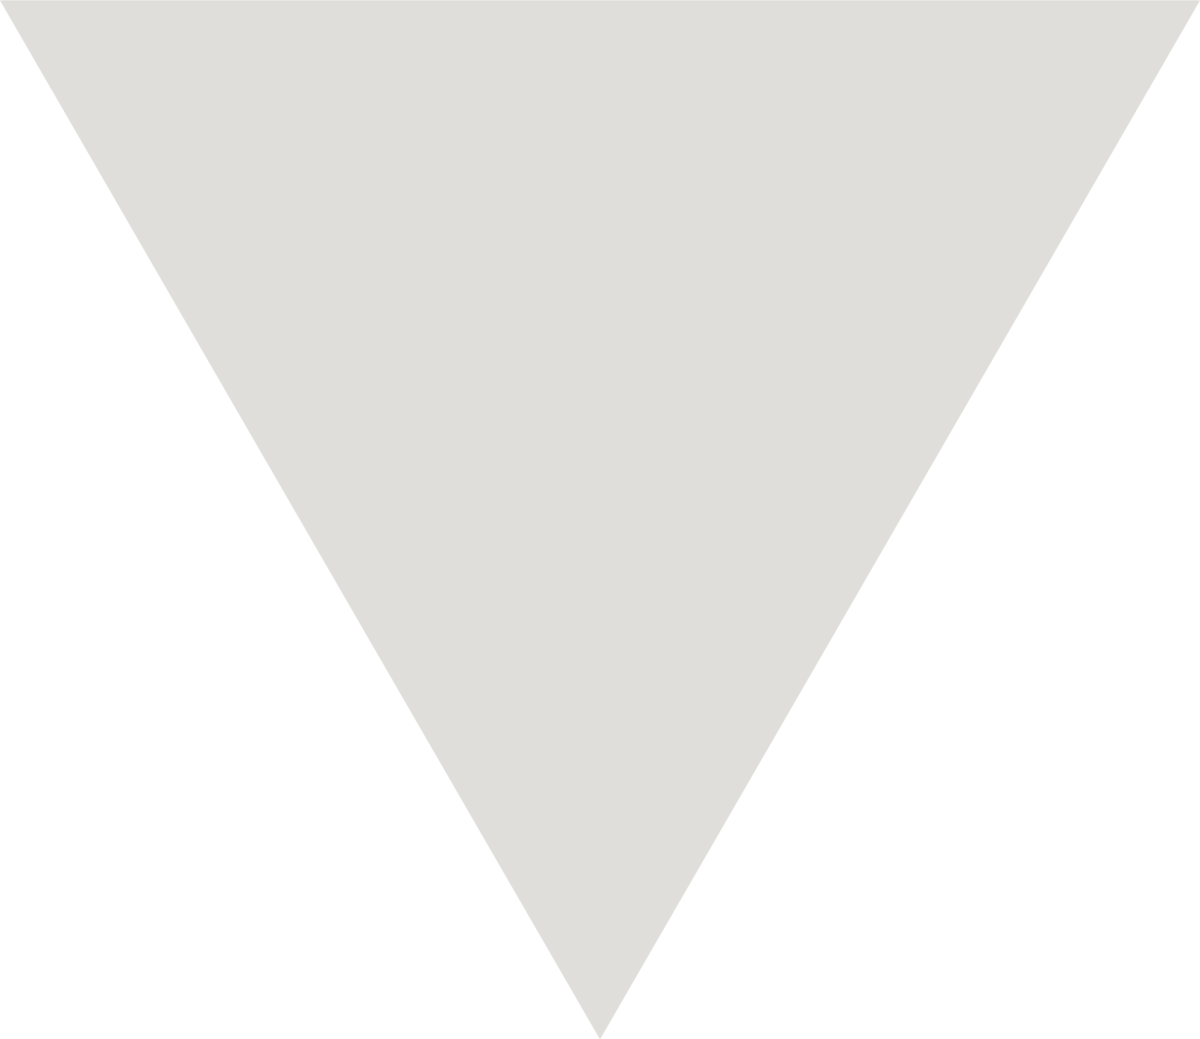 Upside Down Triangle 2